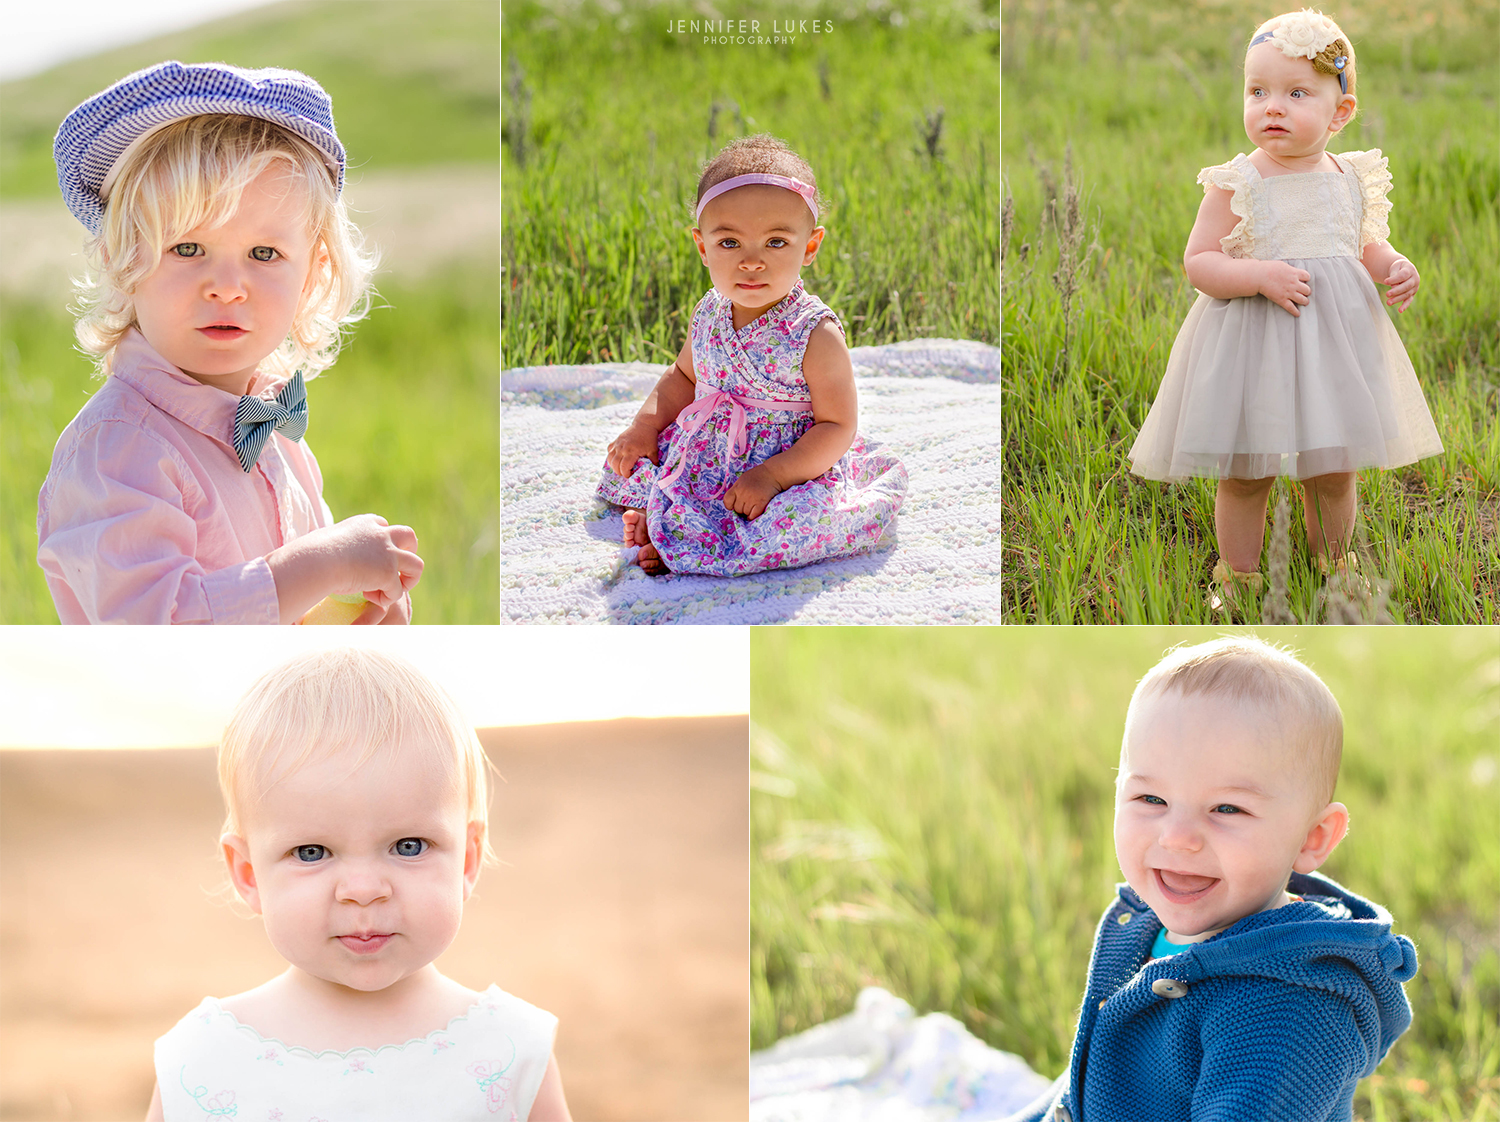 Bellevue babies outdoor first birthday photos.